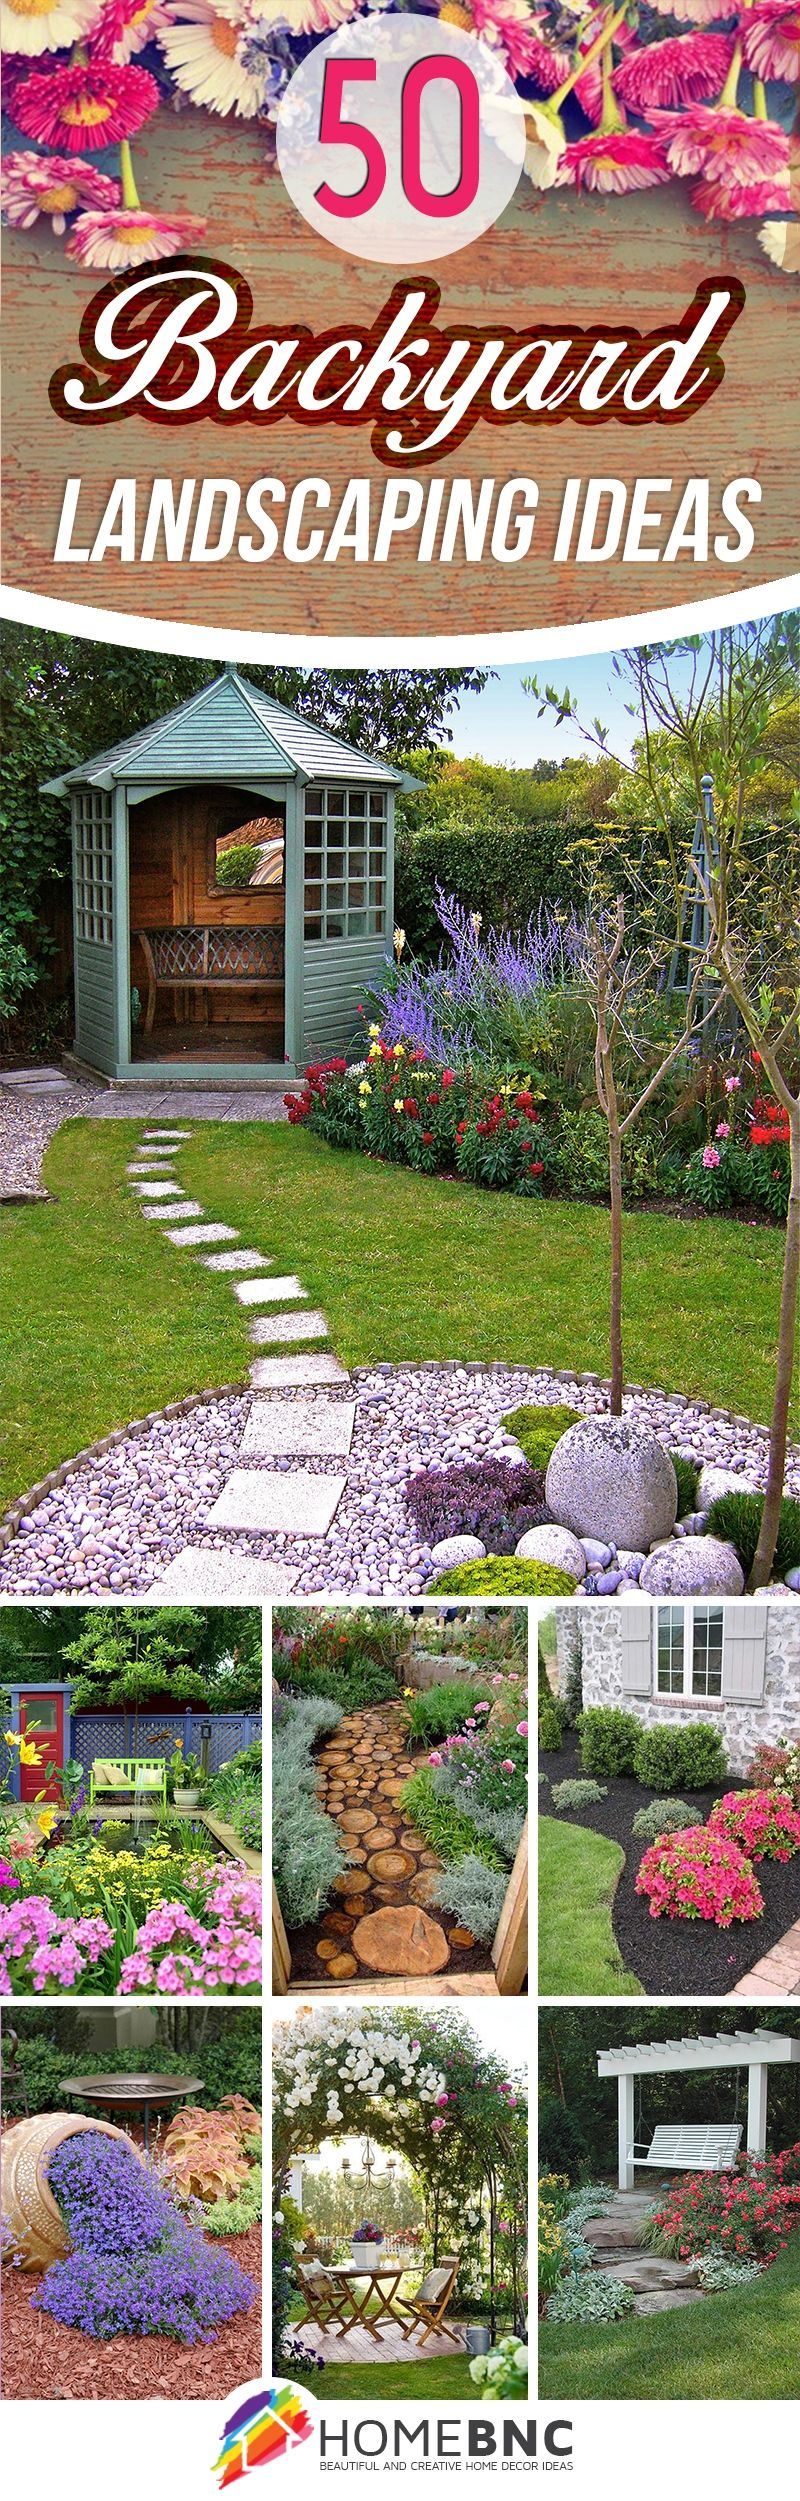 50 BEST BACKYARD LANDSCAPING IDEAS AND DESIGNS IN 2019 IN